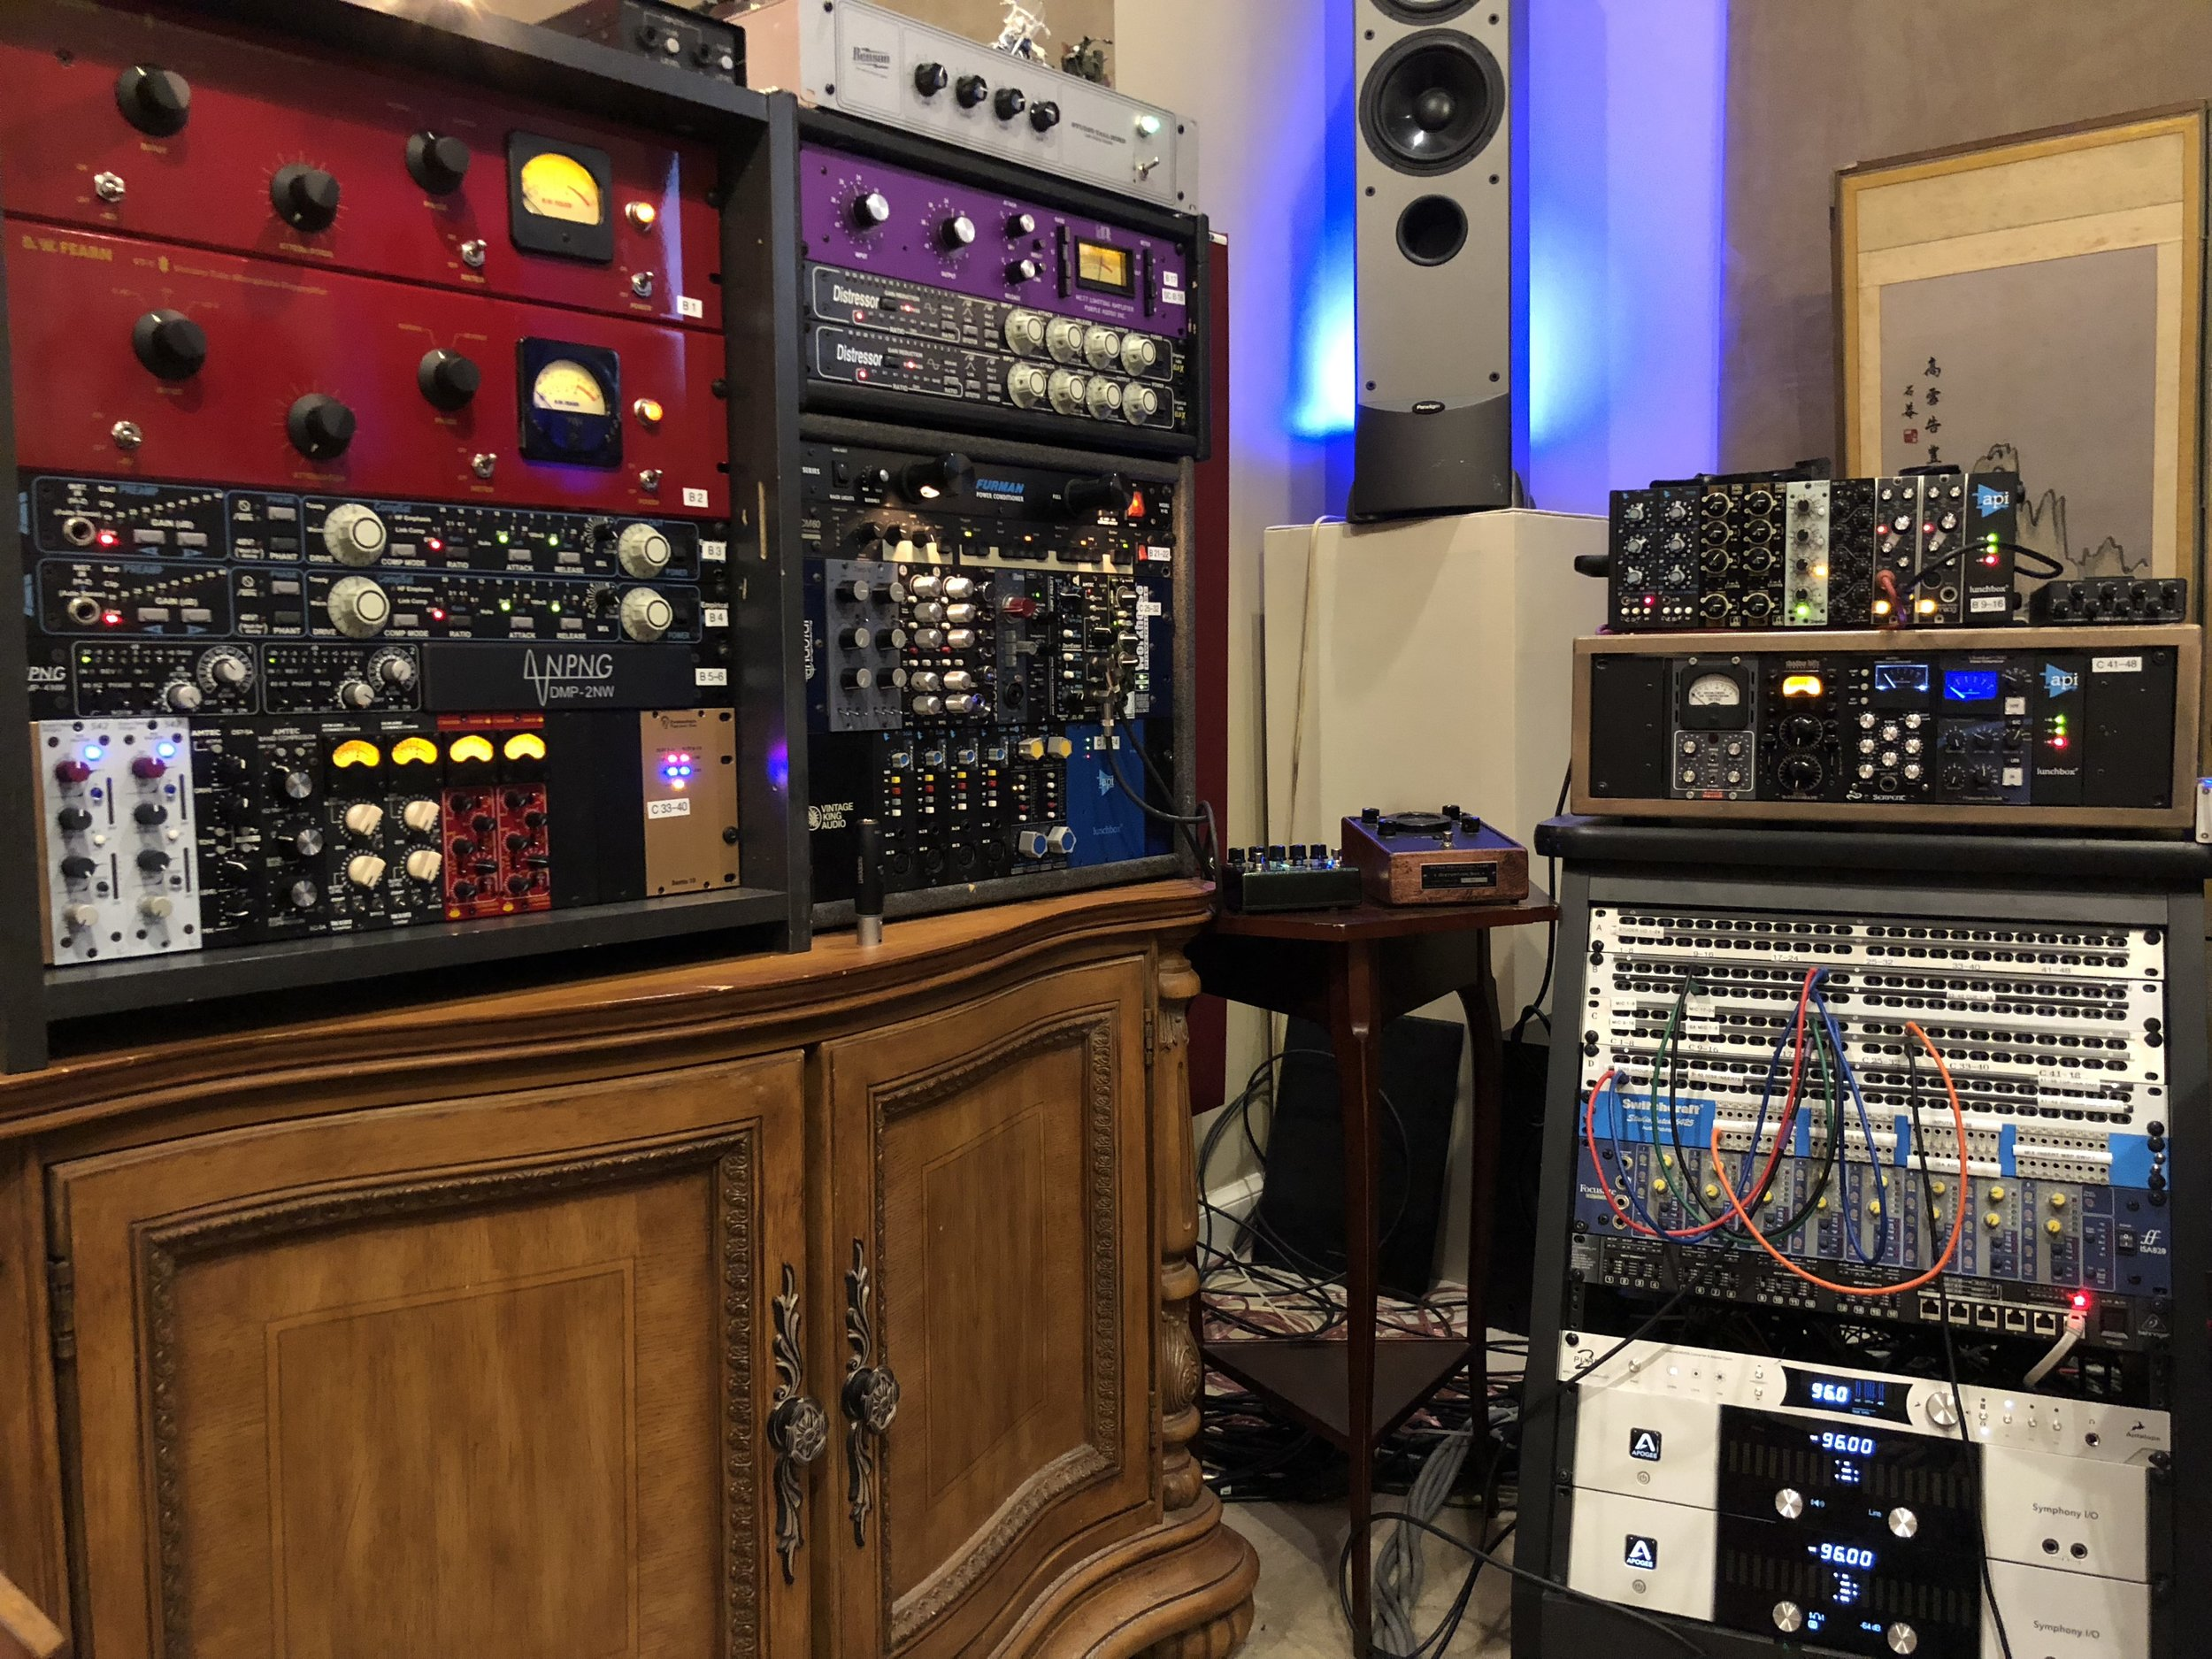 Mic Preamps & D.I. - (2)        AEA RPQ(3)        API 512c(1)        Avalon VT-737sp(1)        Blue Robbie(1)        Chandler Ltd. Little Devil(2)        D.W. Fearn VT-1(2)        Empirical Labes EL-9 Mike-E(8)        Focusrite ISA(1)        Grace m501(1)        Neve 1073LB(2)        NPNG DMP-2NW(2)        Rascal Audio Two-V(1)        Rupert Neve Designs 511       (2)        Cloudlifter CL-2 (Line Booster)(1)        Custom Reamp Unit w/St. Ives             Transformer(2)        NPNG Diehlio D.I.(2)        Radial D.I. (Active)(1)        Radial ProRMP Reamp Unit(2)        Triton Audio FetHead (Line Booster)